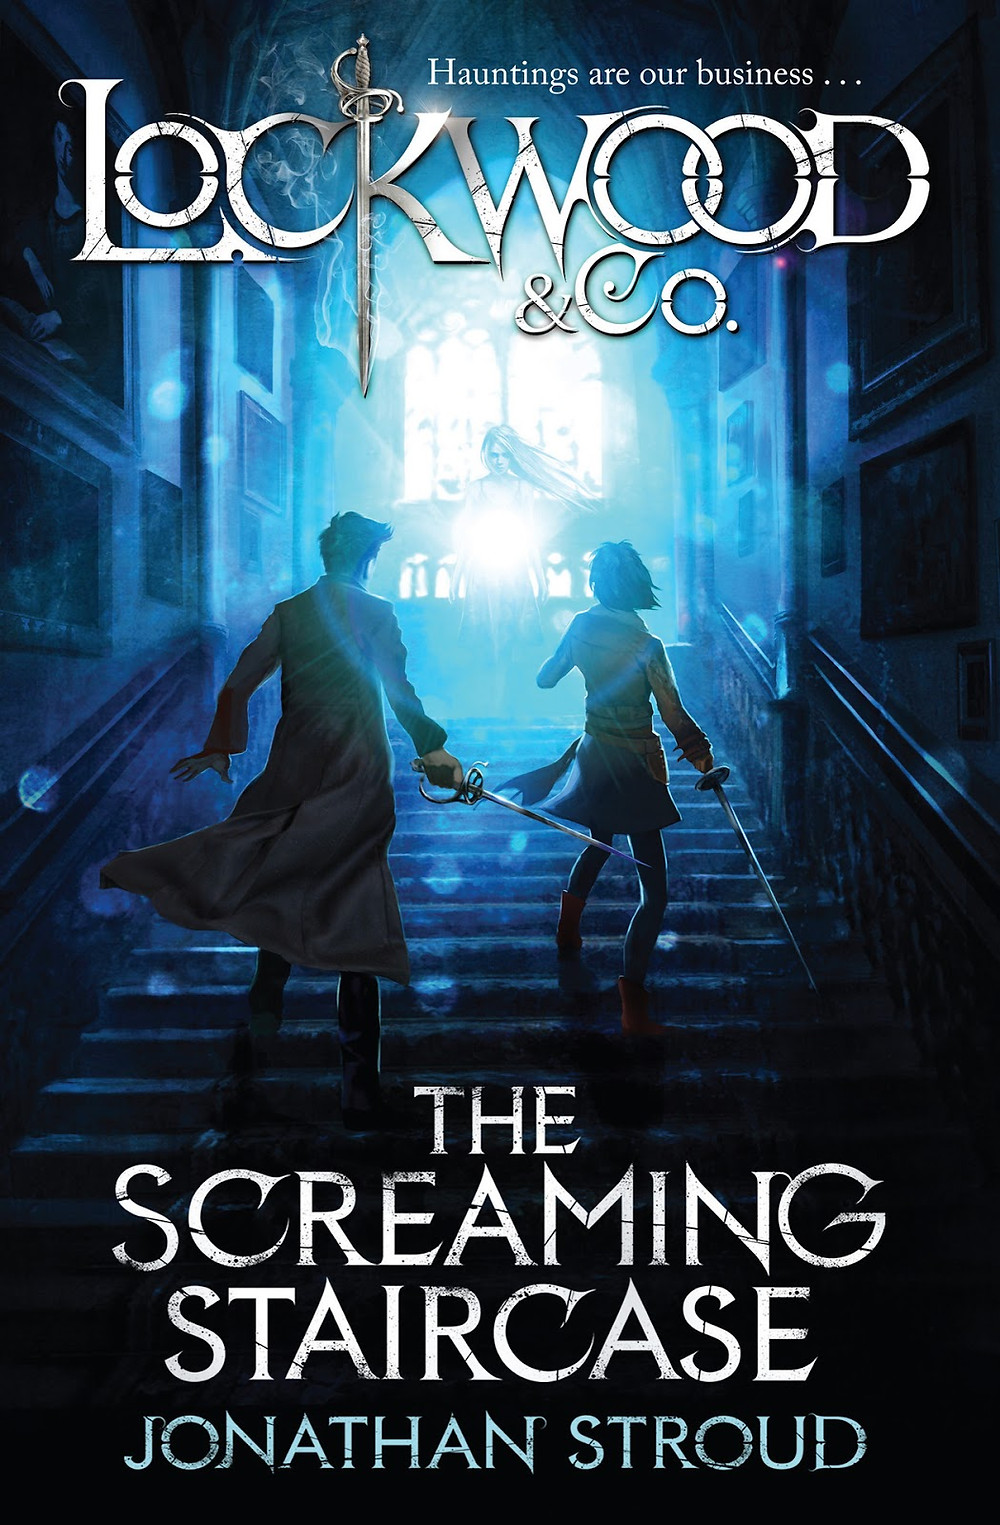 The Screaming Staircase (Lockwood & Co. Book 1) by Jonathan Stroud